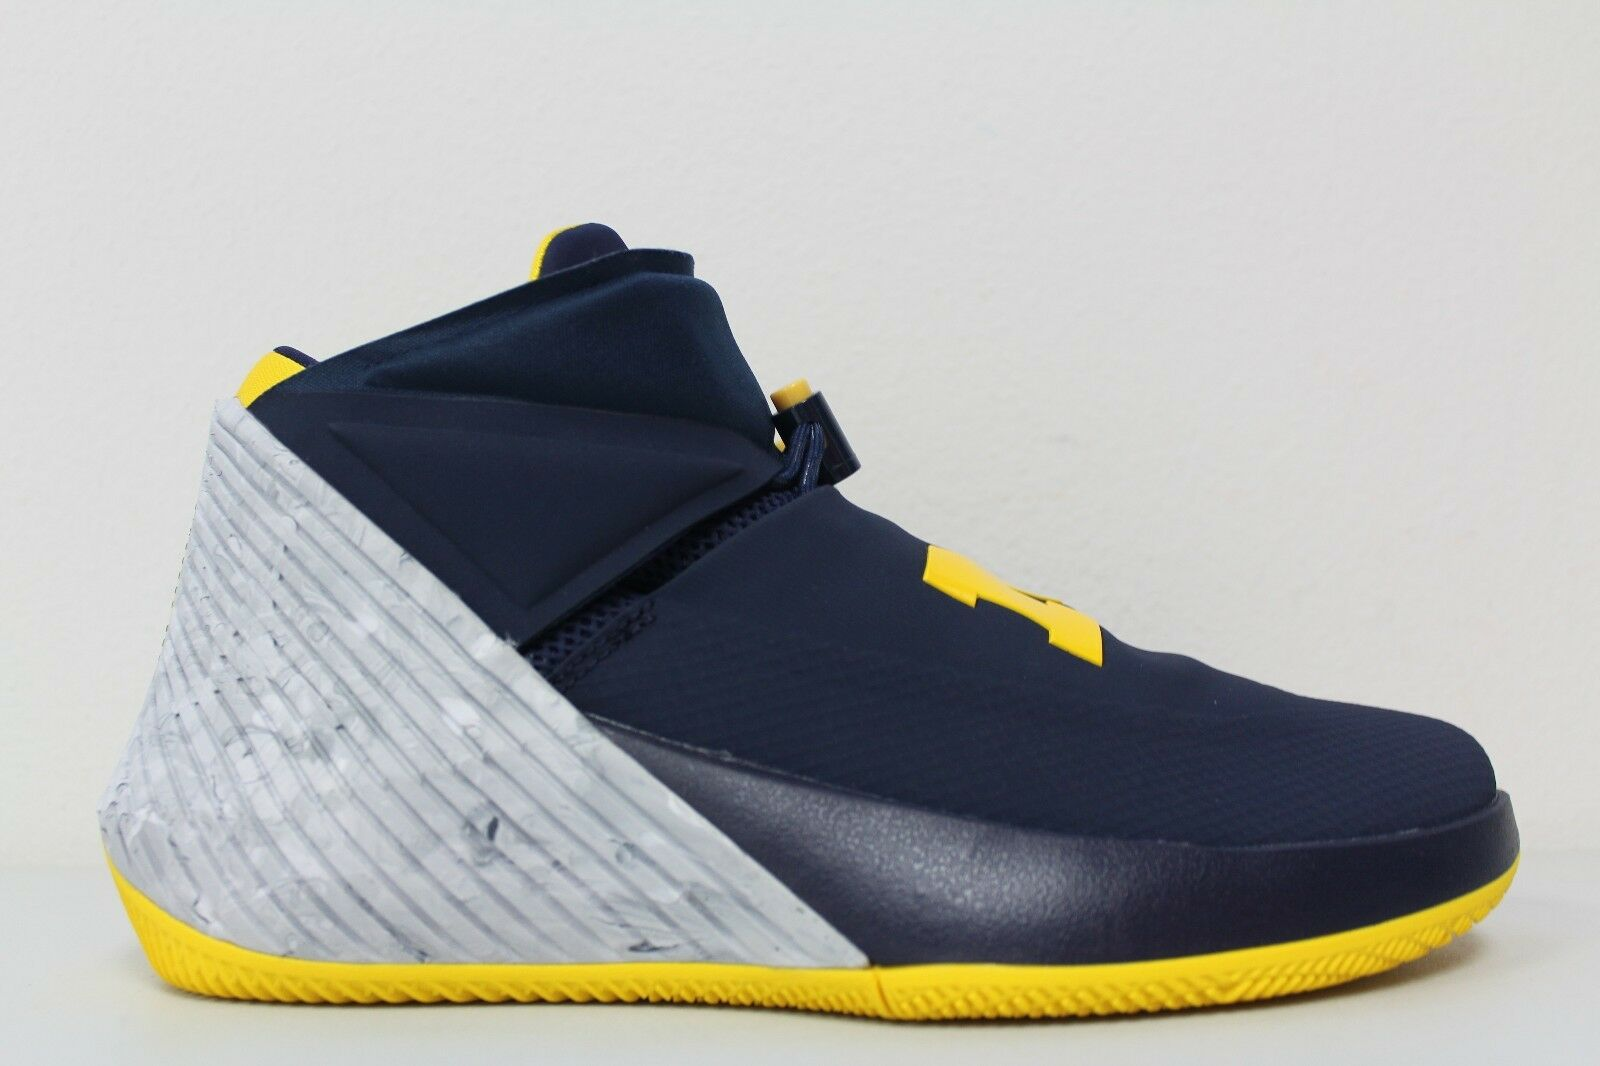 Nike Mens Air Jordan Why Not Zero.1 Russell Westbrook Michigan AA2510-405 Sz 10 The most popular shoes for men and women